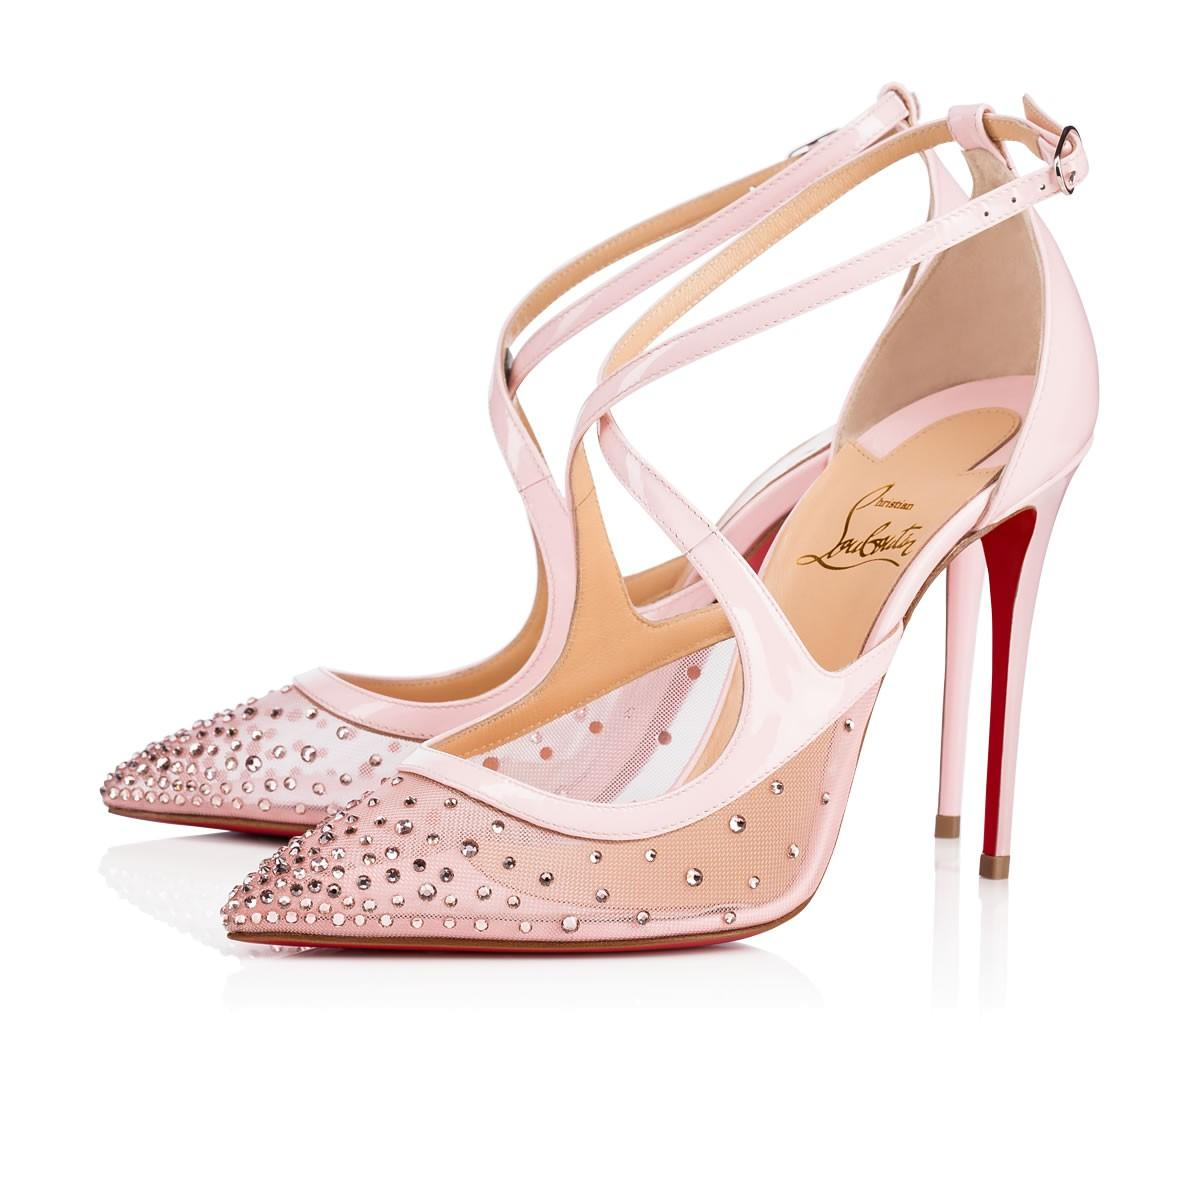 ae34f495fc0f Christian Louboutin Twistissima Strass In Version Vintage Rose ...